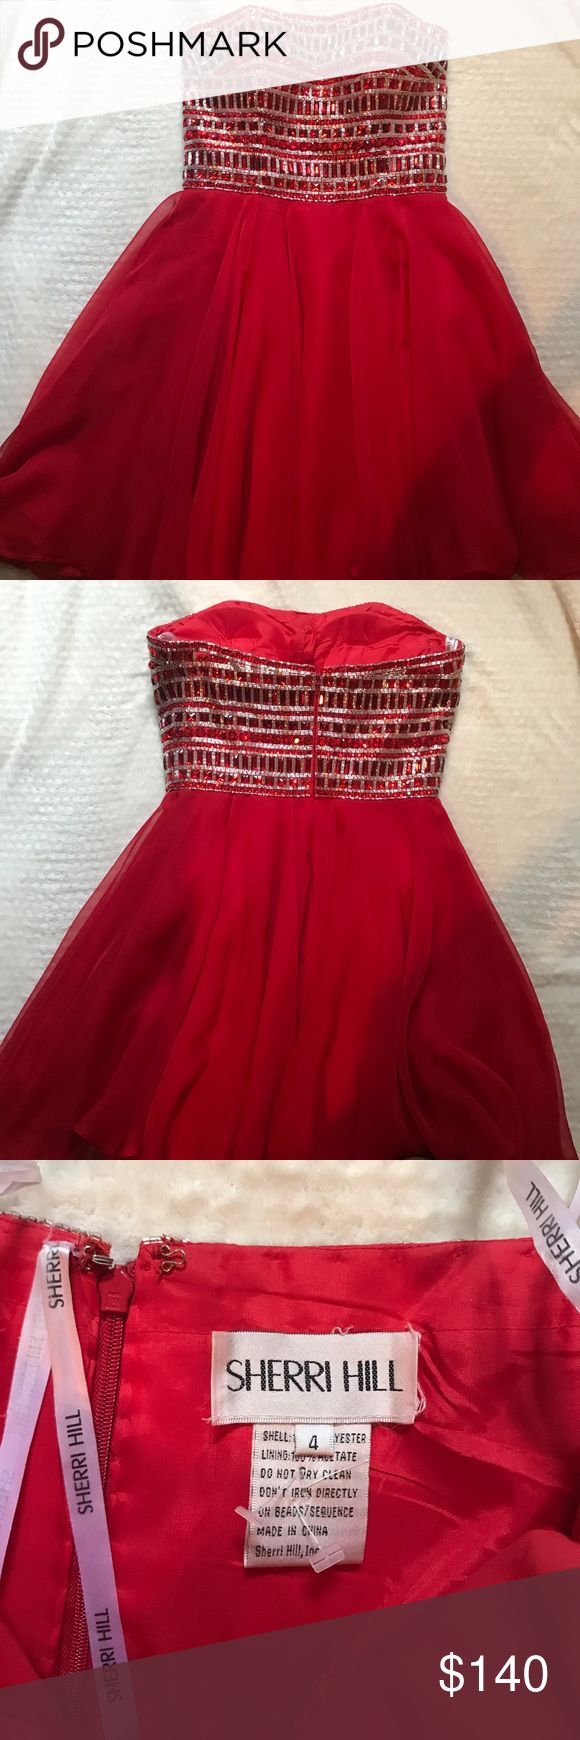 Sherri hill red dress Red with silver and red sequence top. Offers highly accepted Sherri Hill Dresses Strapless